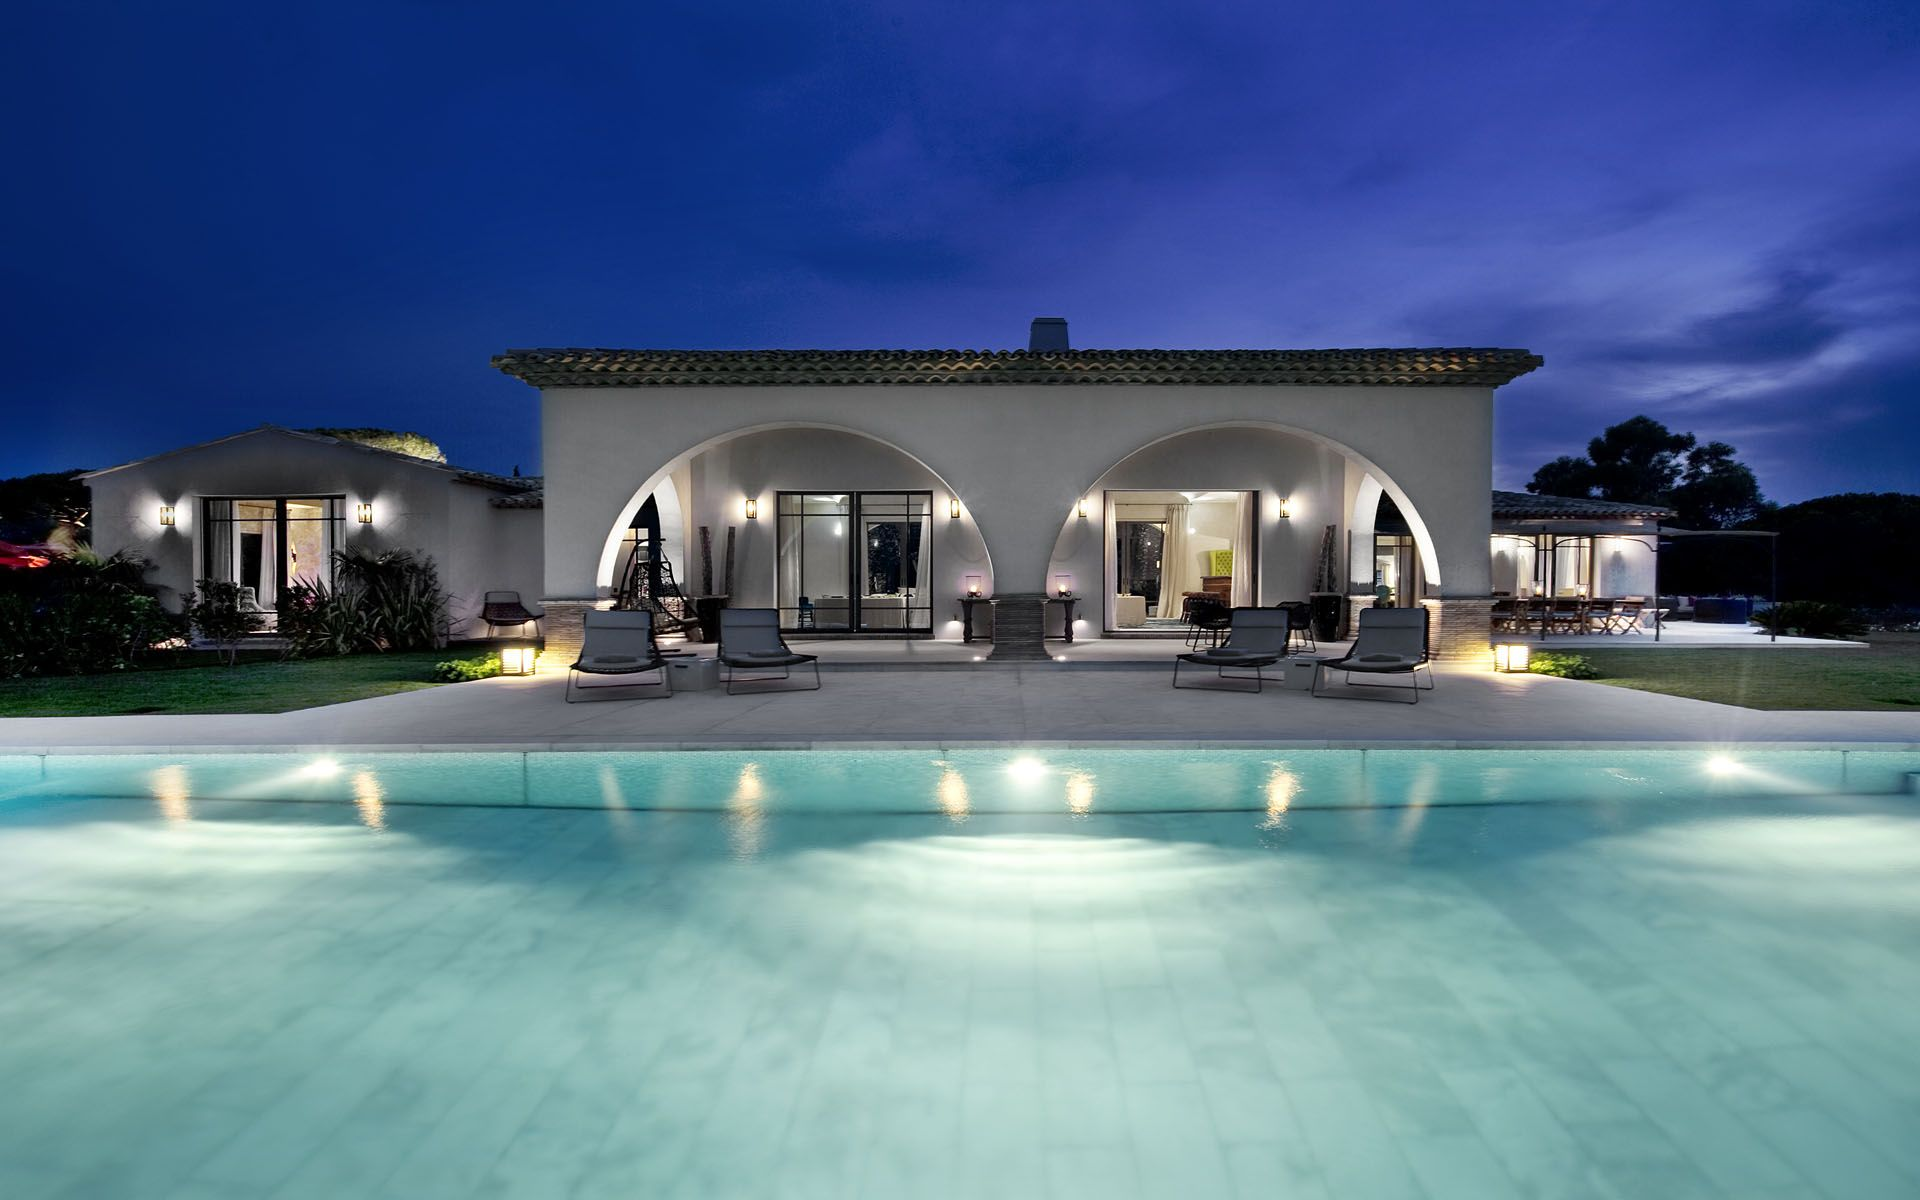 Best Images About My Dream Home On Pinterest Luxury Dream - Luxury homes design